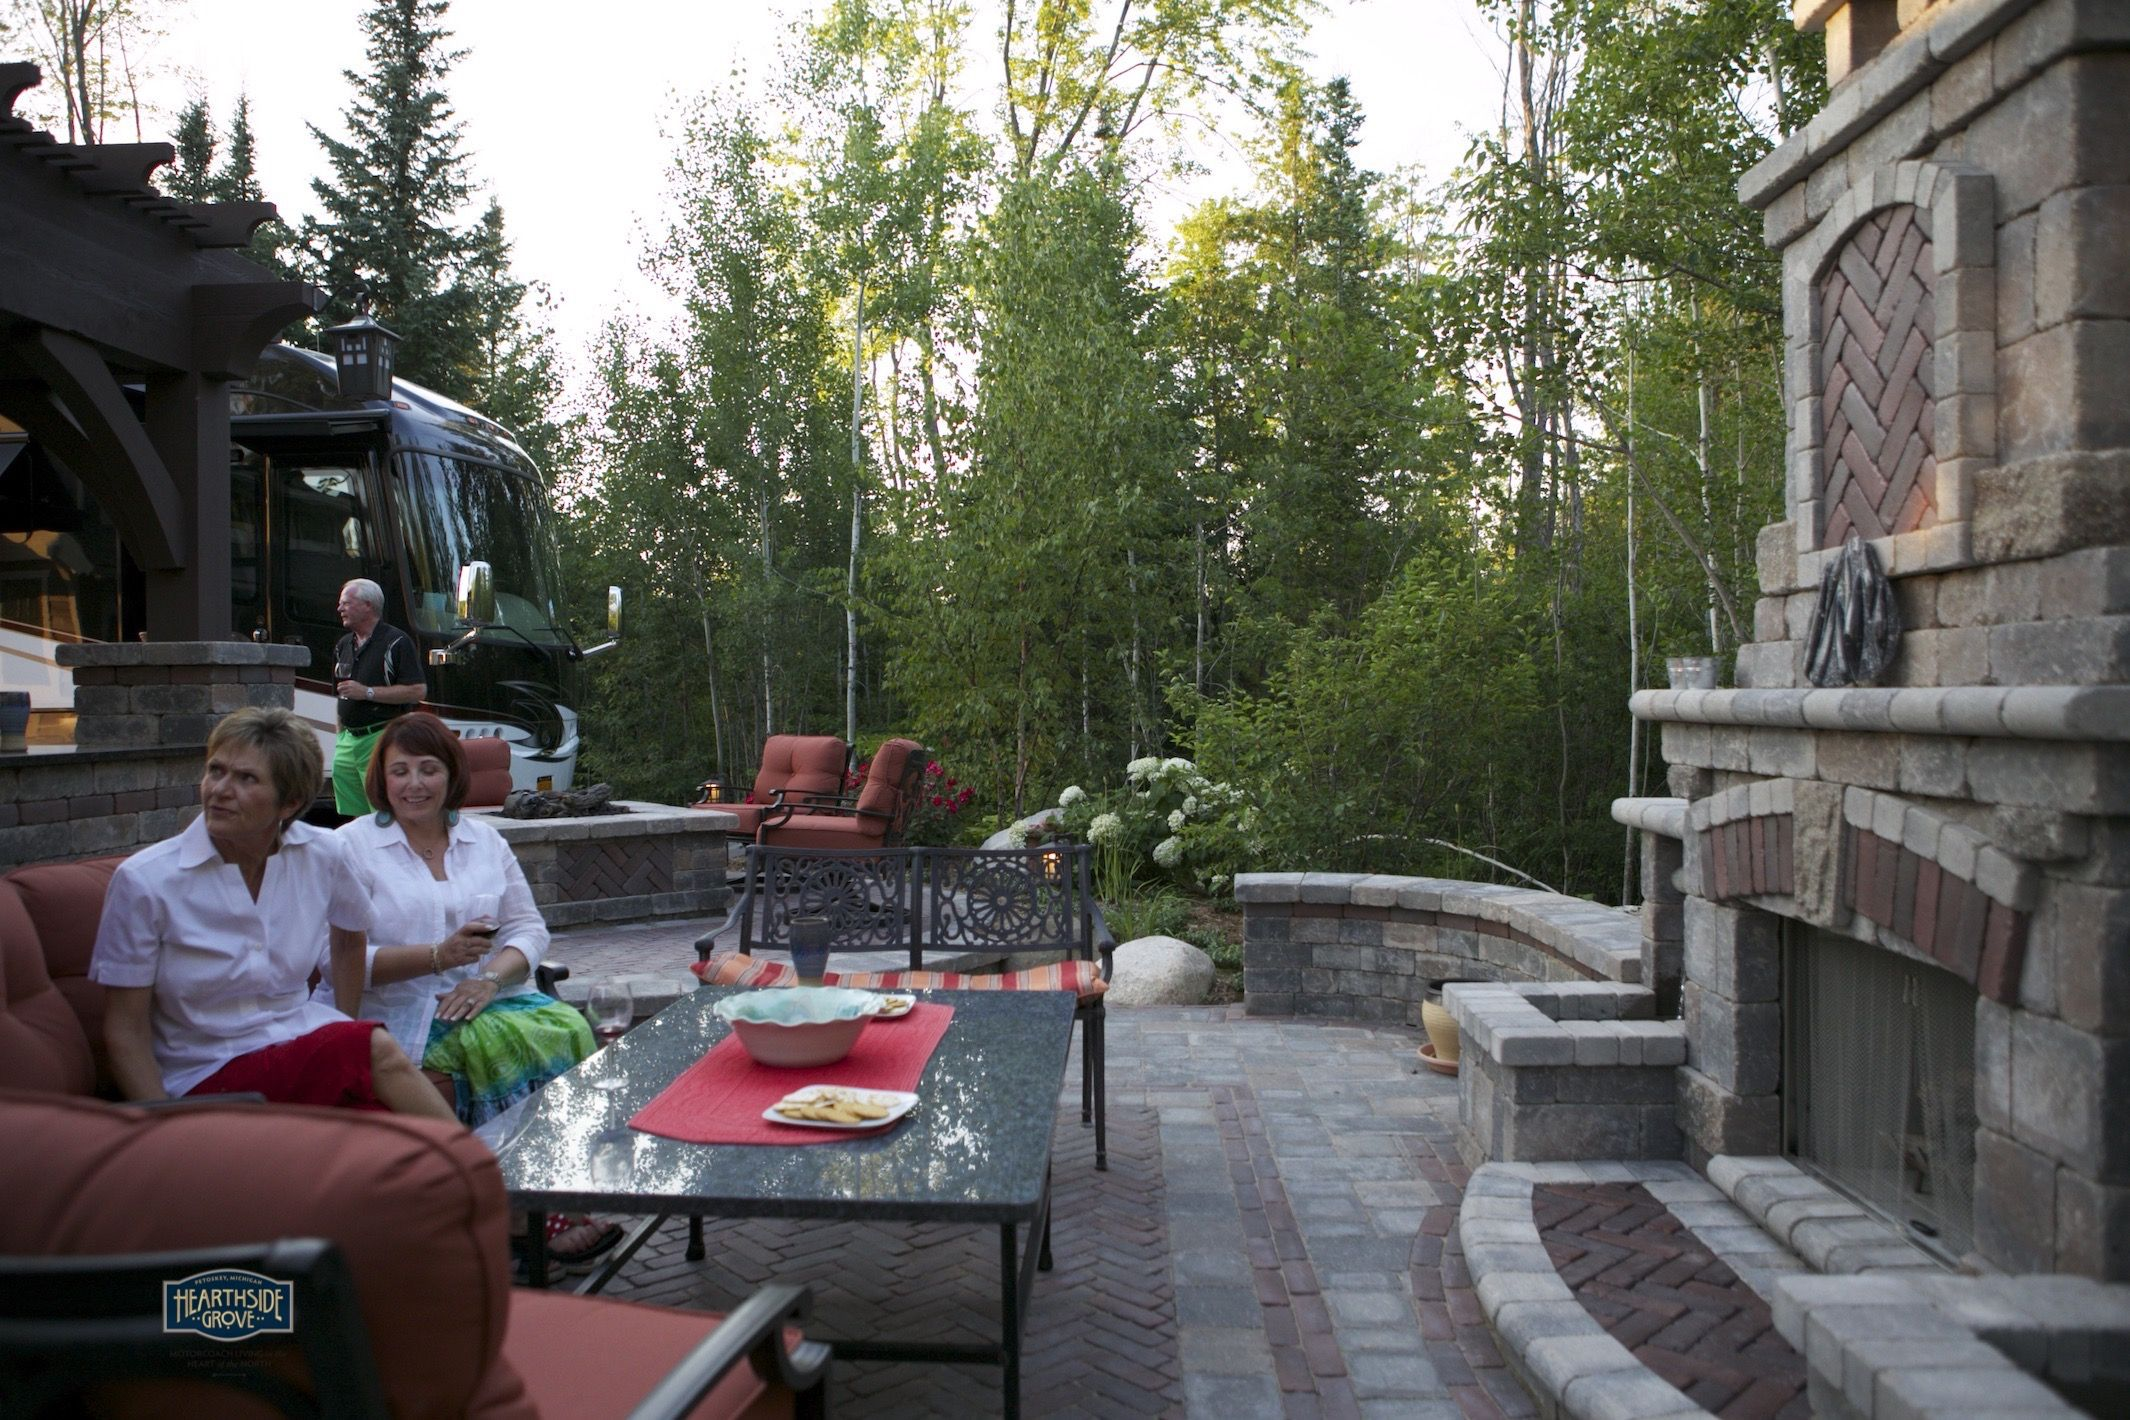 Awesome Hearthside Grove Luxury Motorcoach Resort Lot 78   #exterior #outdoor  #fireplace #patio